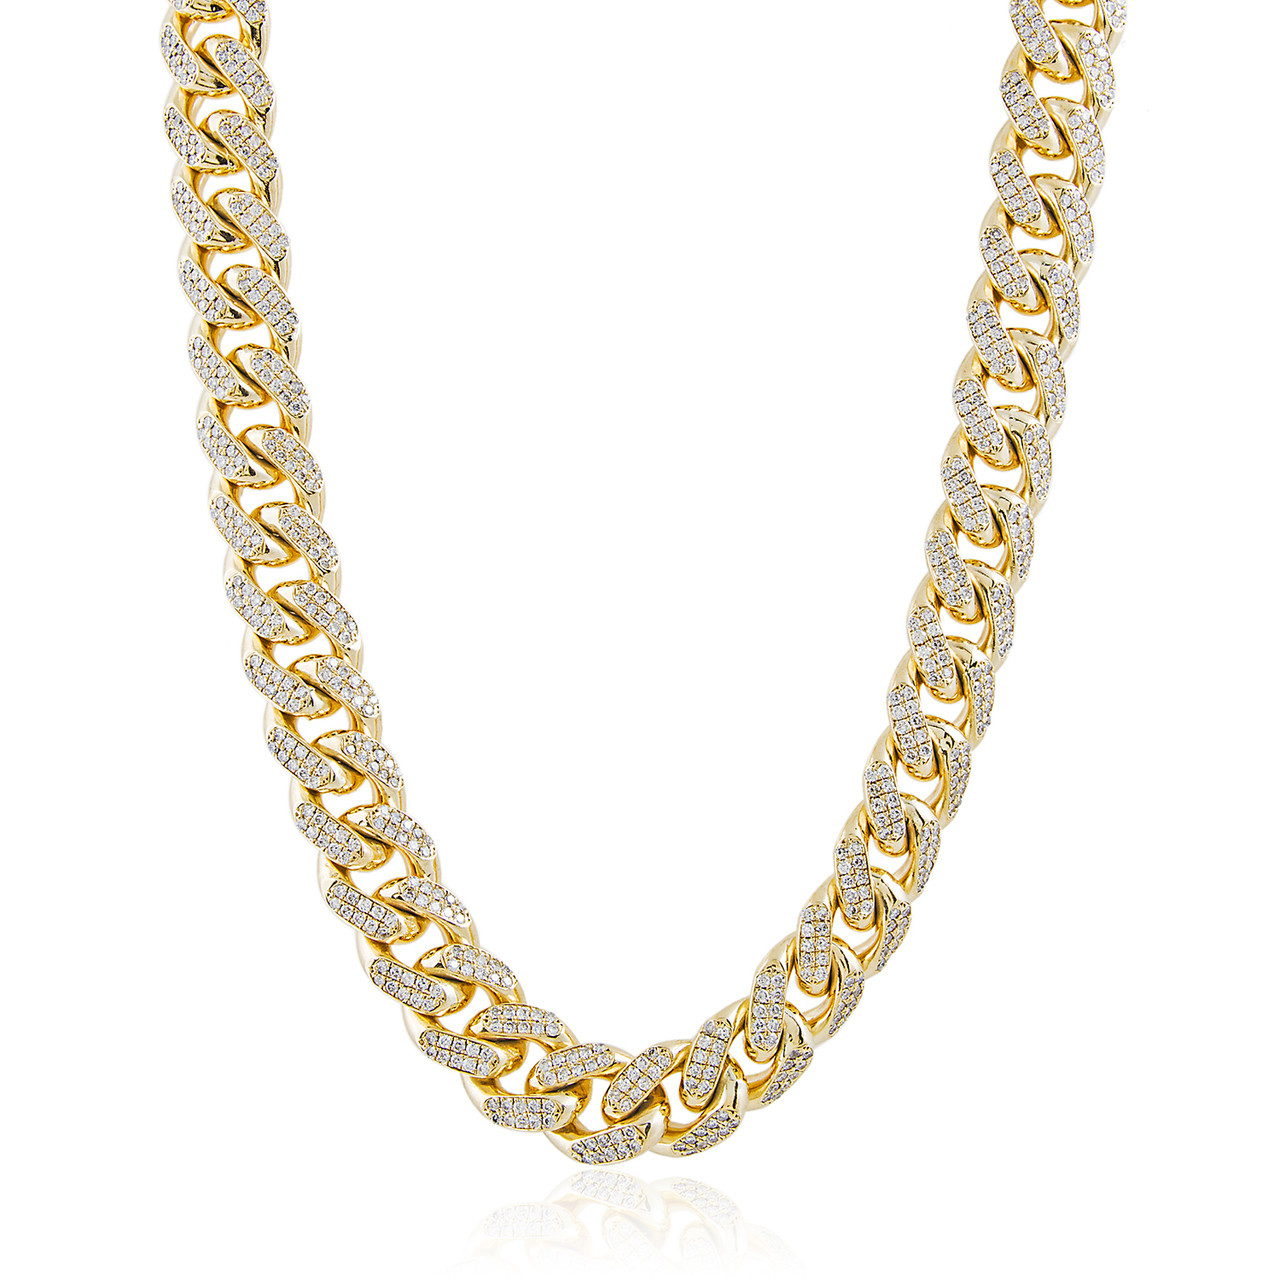 Cuban Link Chain For Sale >> 14k Yellow Gold 26ct Diamond Cuban Link Chain 36in Shyne Jewelers